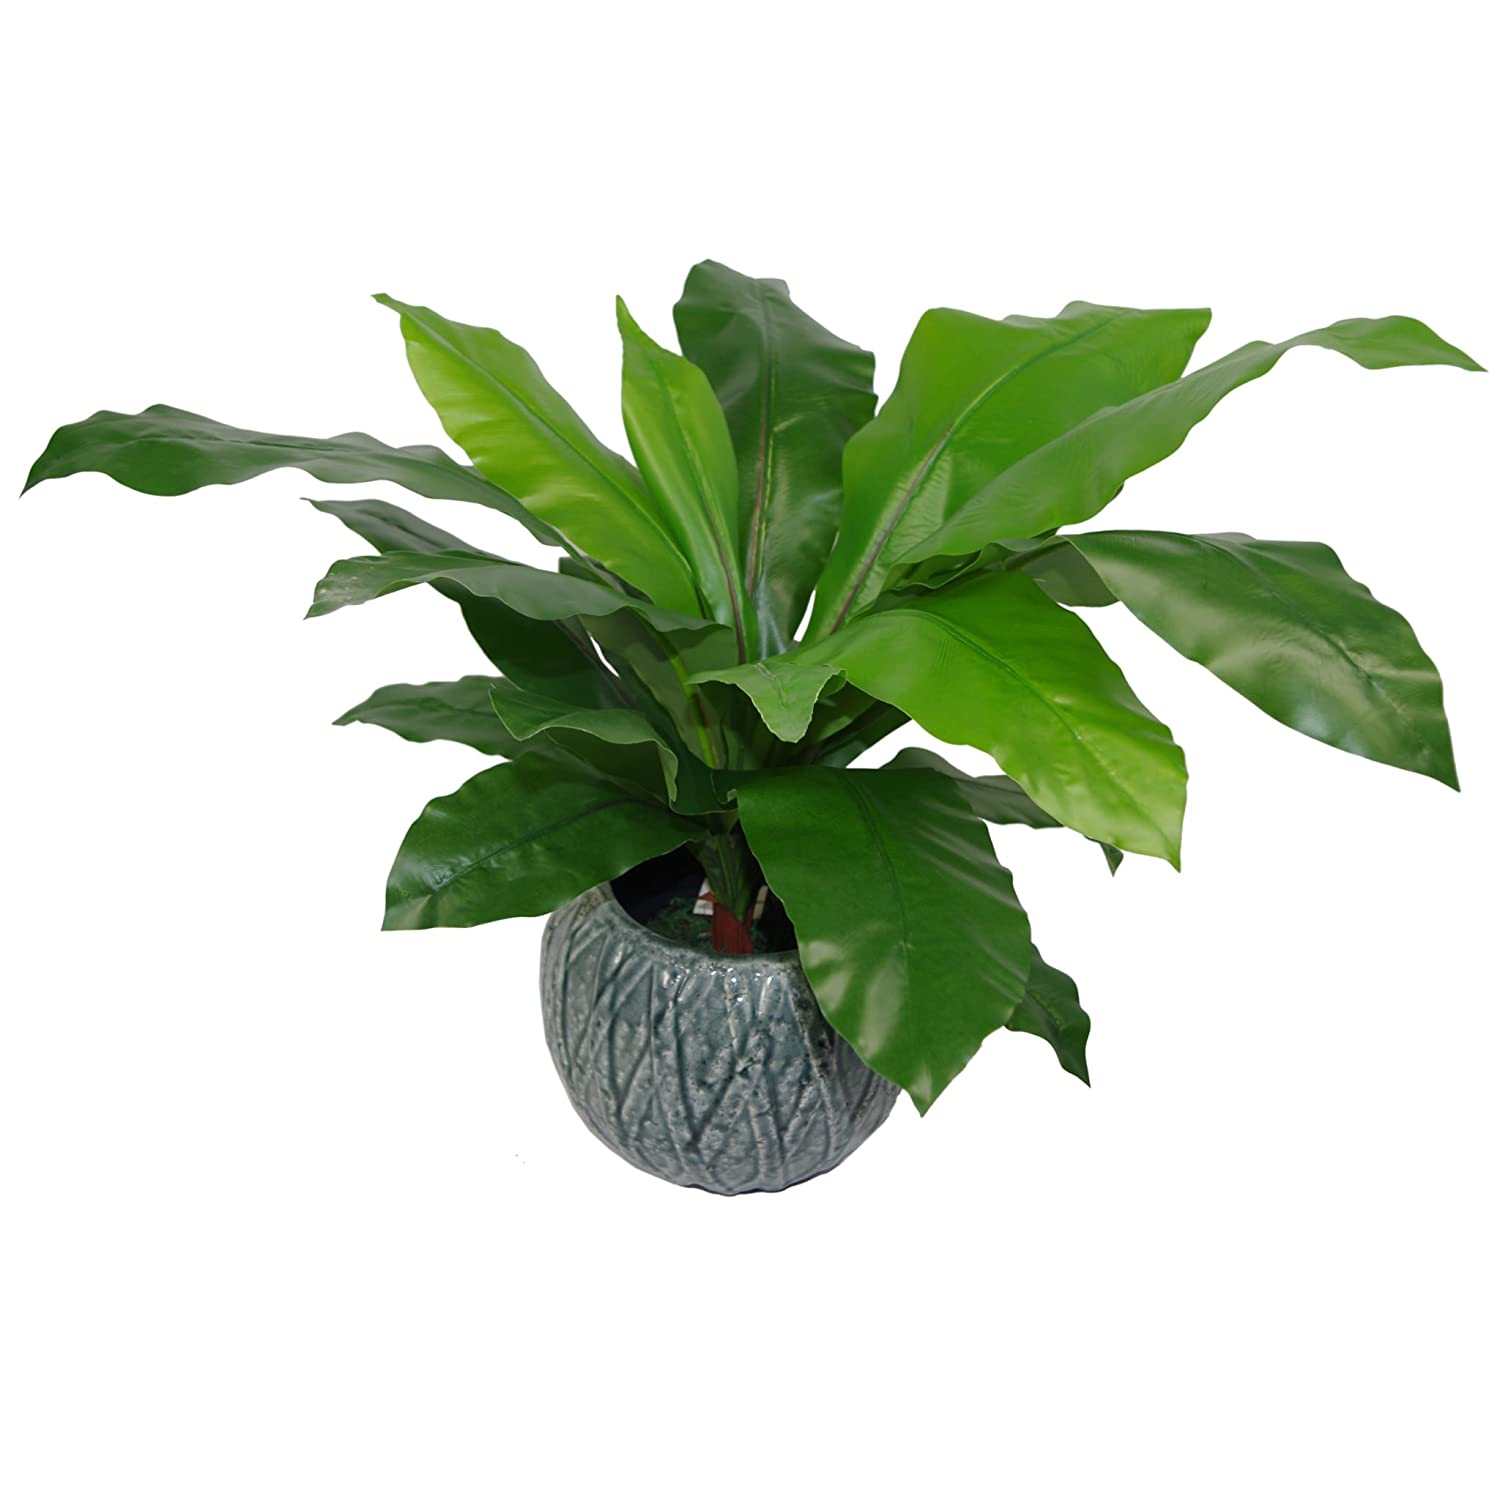 Leaf Artificial Bird's Nest Fern Plant Potted in Black Plastic Pot, 50cm Bushy LeafUK